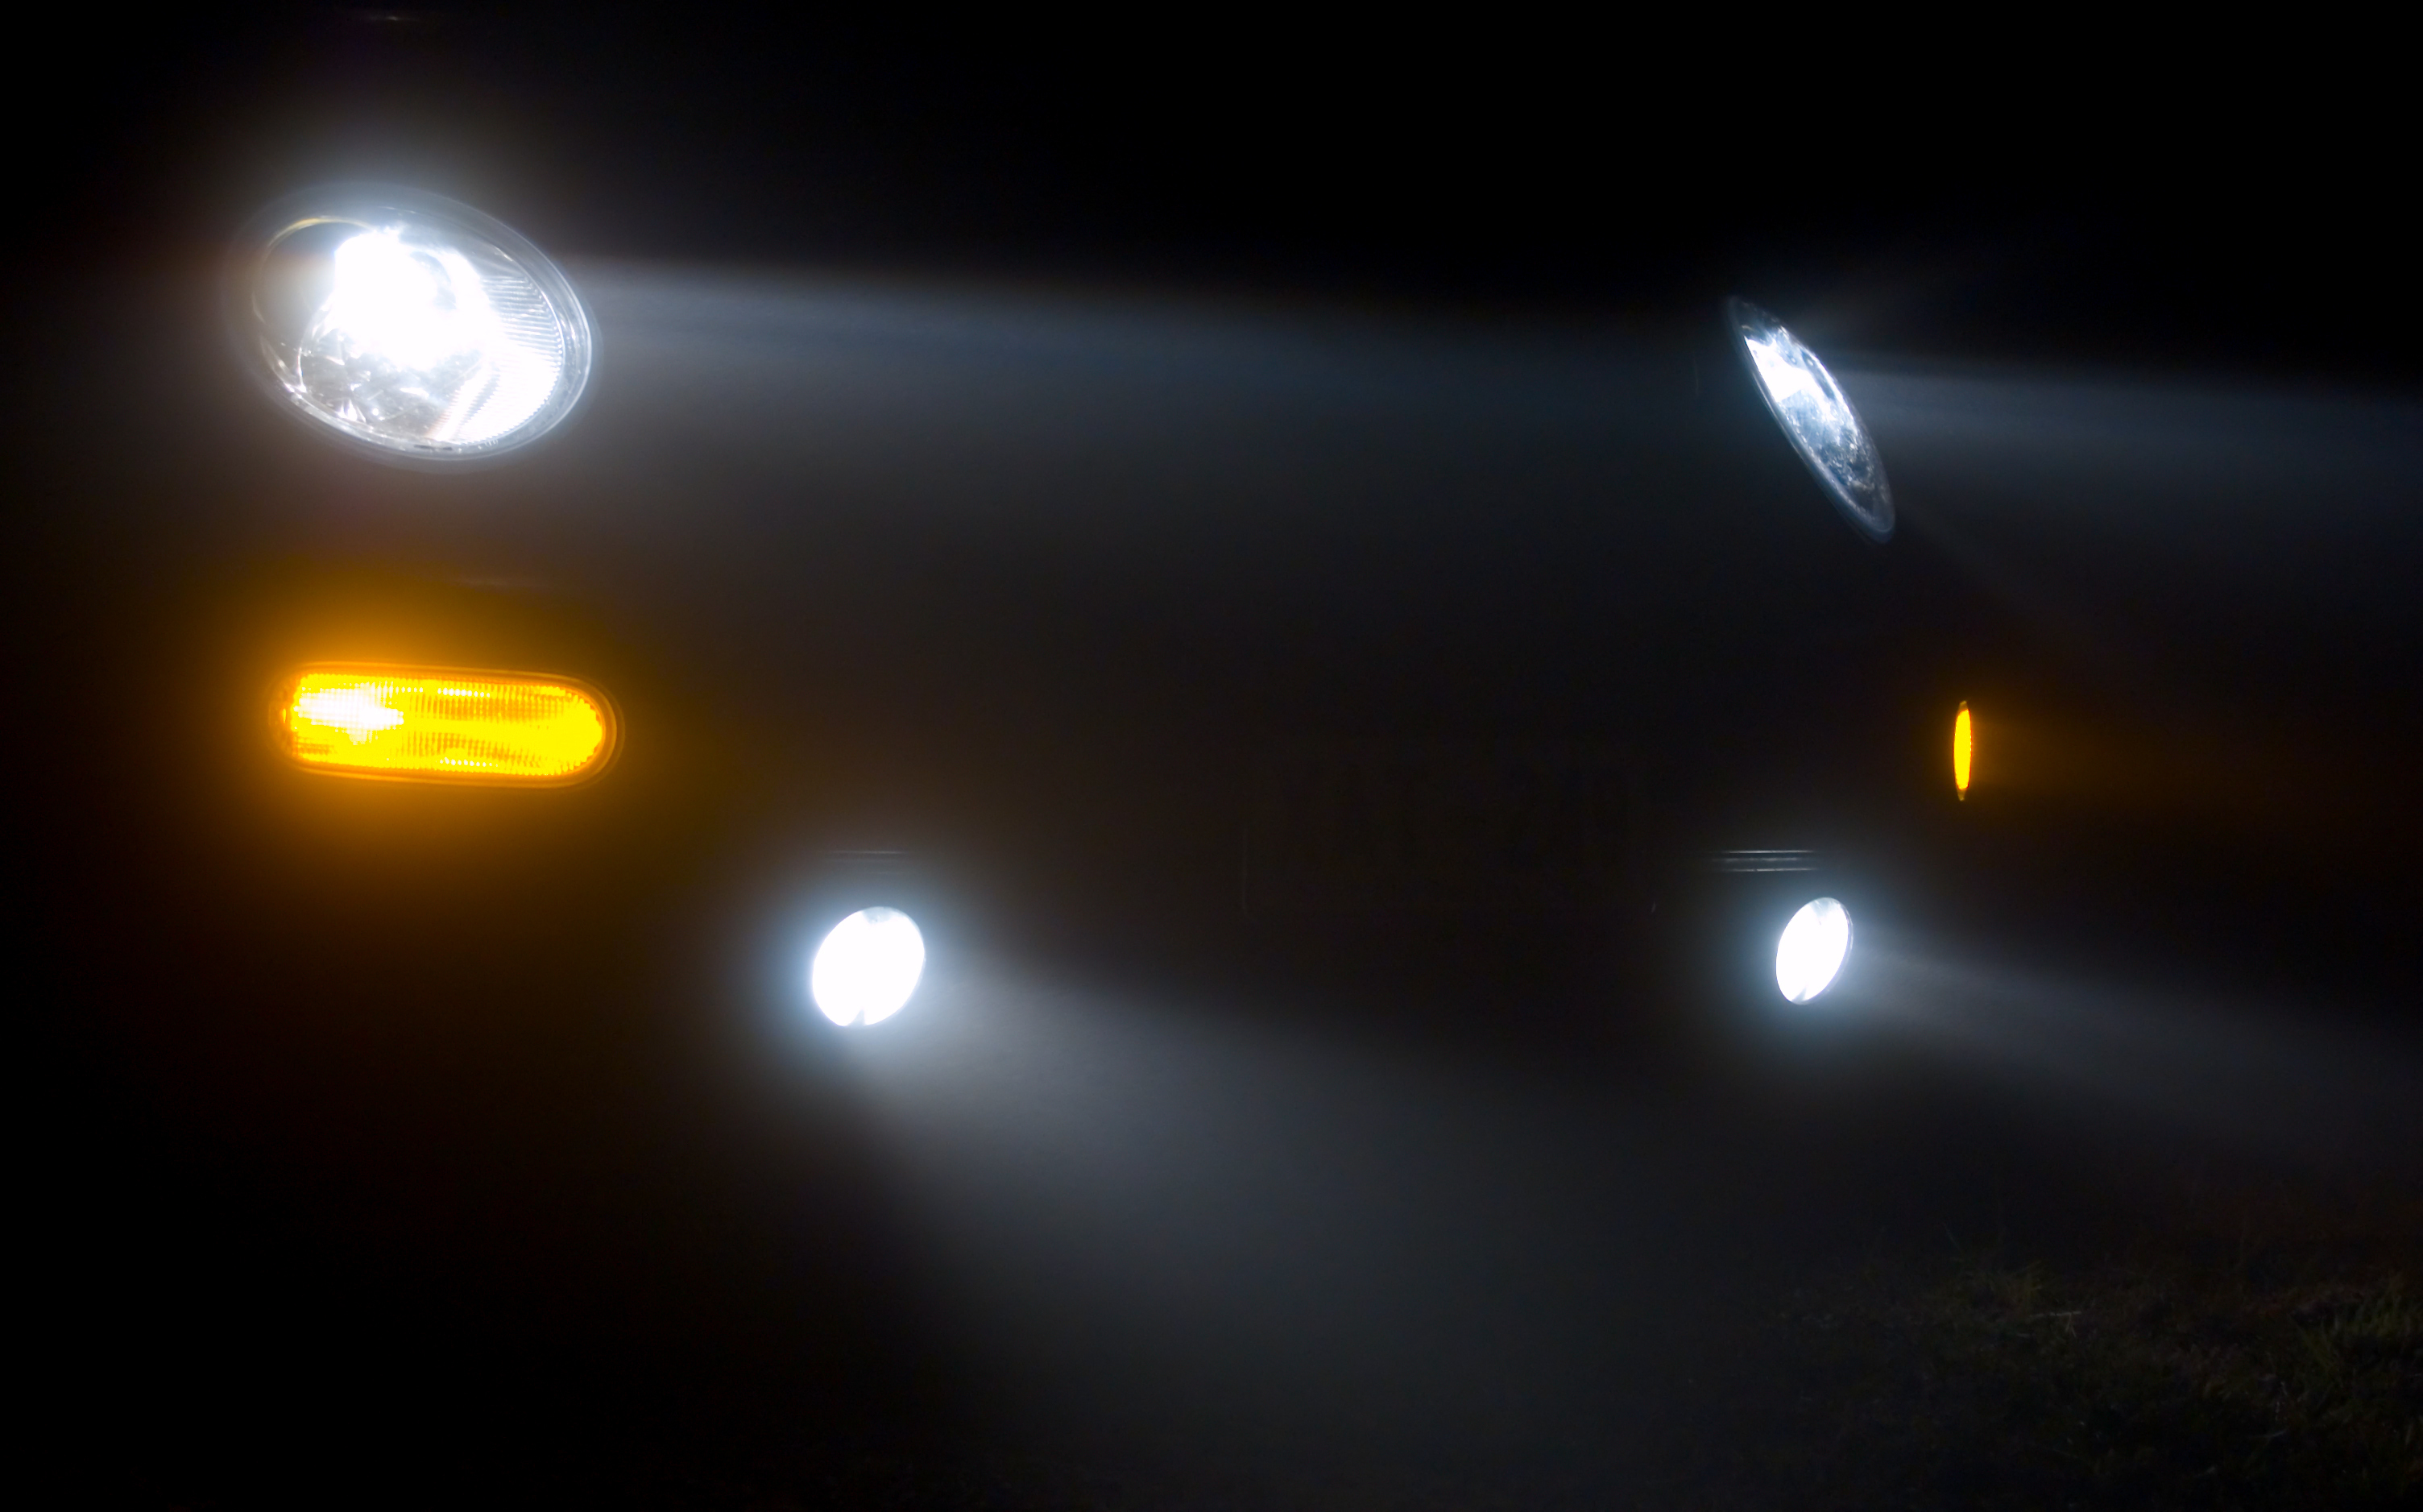 jeep-suvs-vans-led-lights-replacement-12v-off-roading